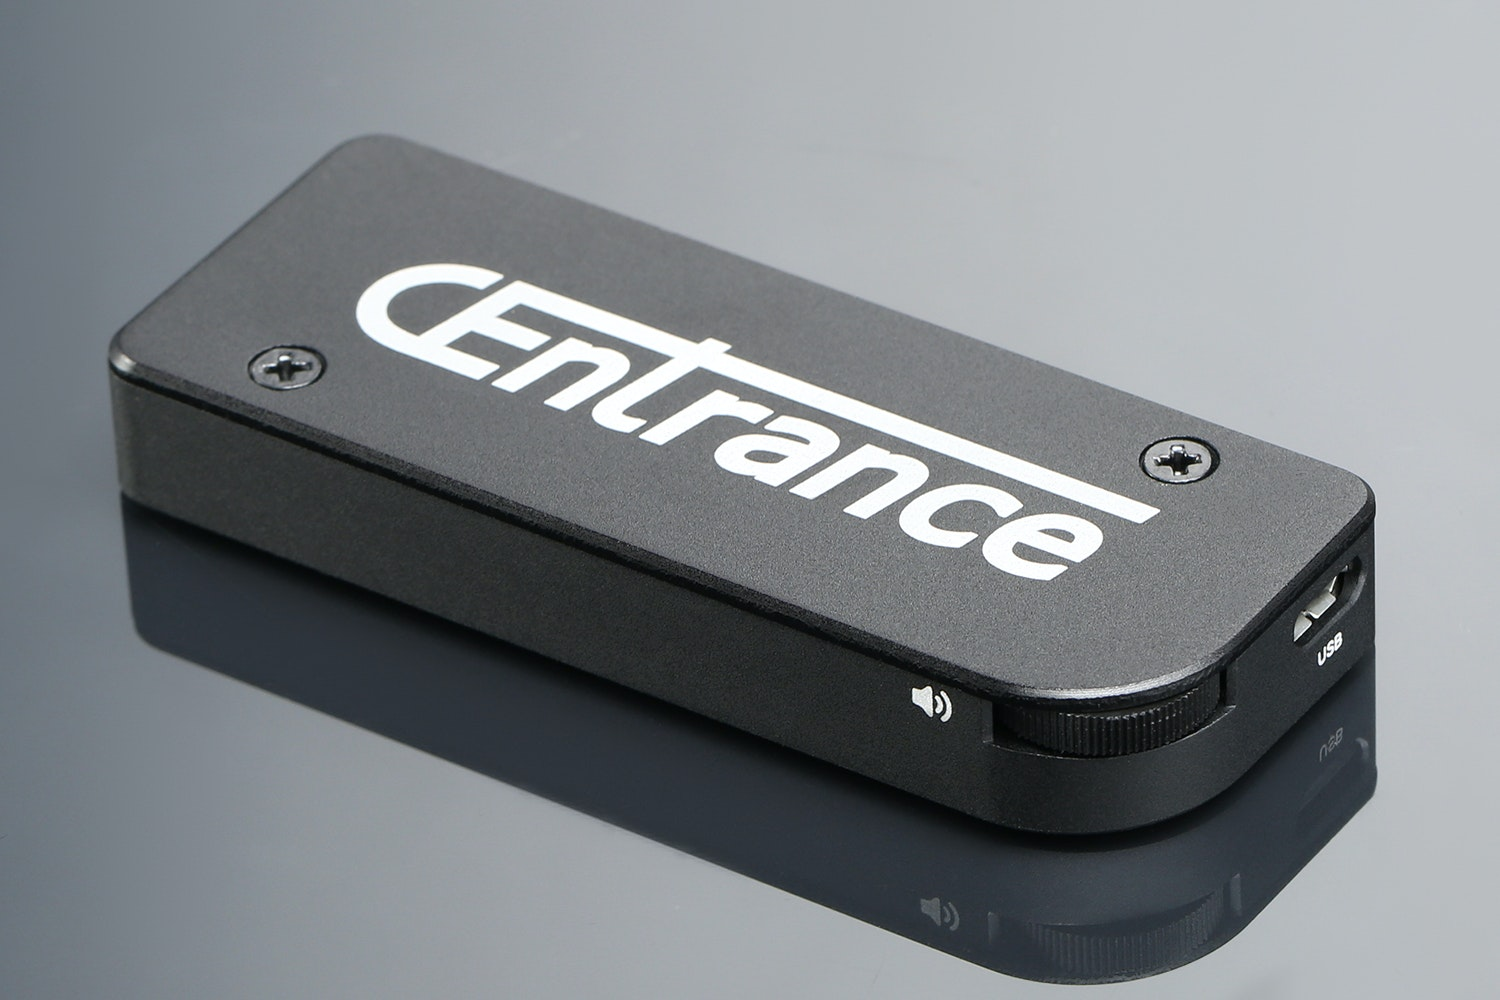 CEntrance DACport Slim - Massdrop Exclusive